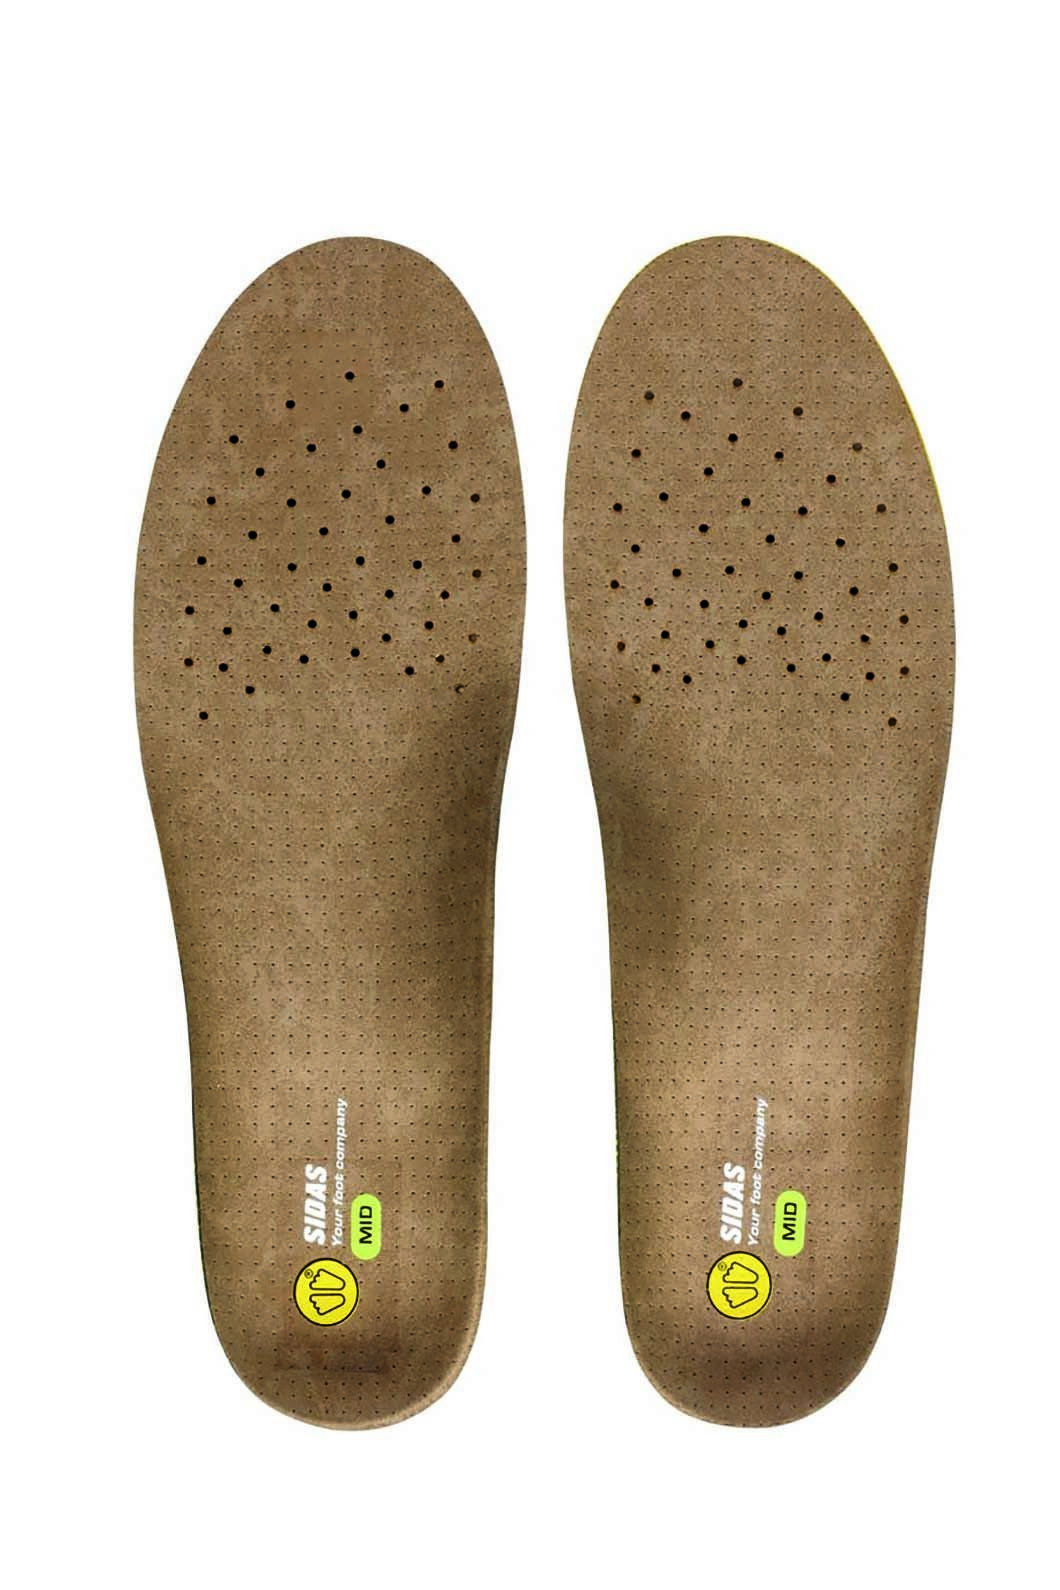 Sidas 3 Feet Outdoor Mid Innersole, Brown, hi-res